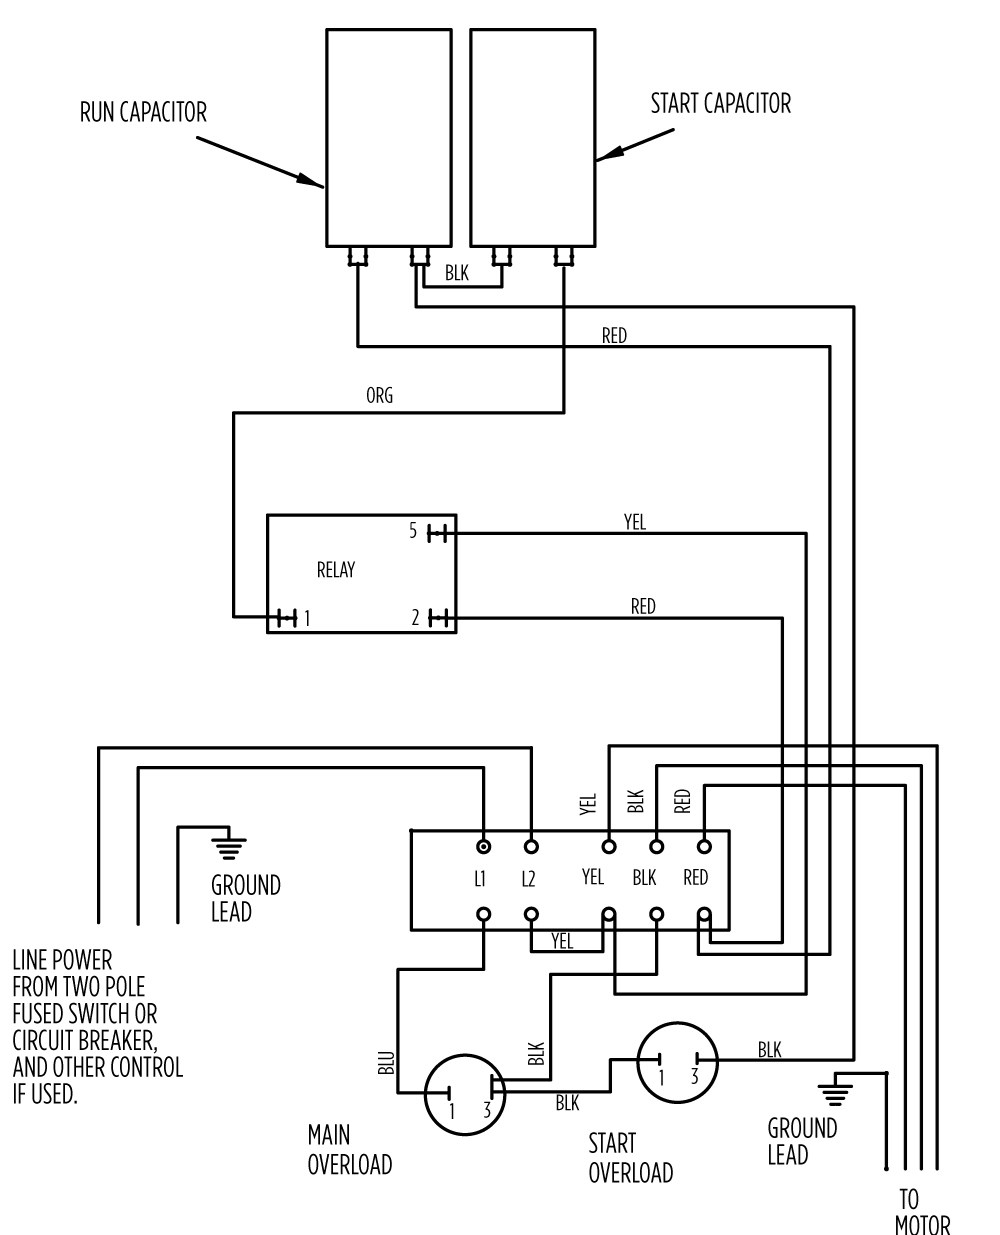 2 hp standard 282 301 8110_aim gallery?format=jpg&quality=80 aim manual page 55 single phase motors and controls motor wiring diagram standards at bayanpartner.co